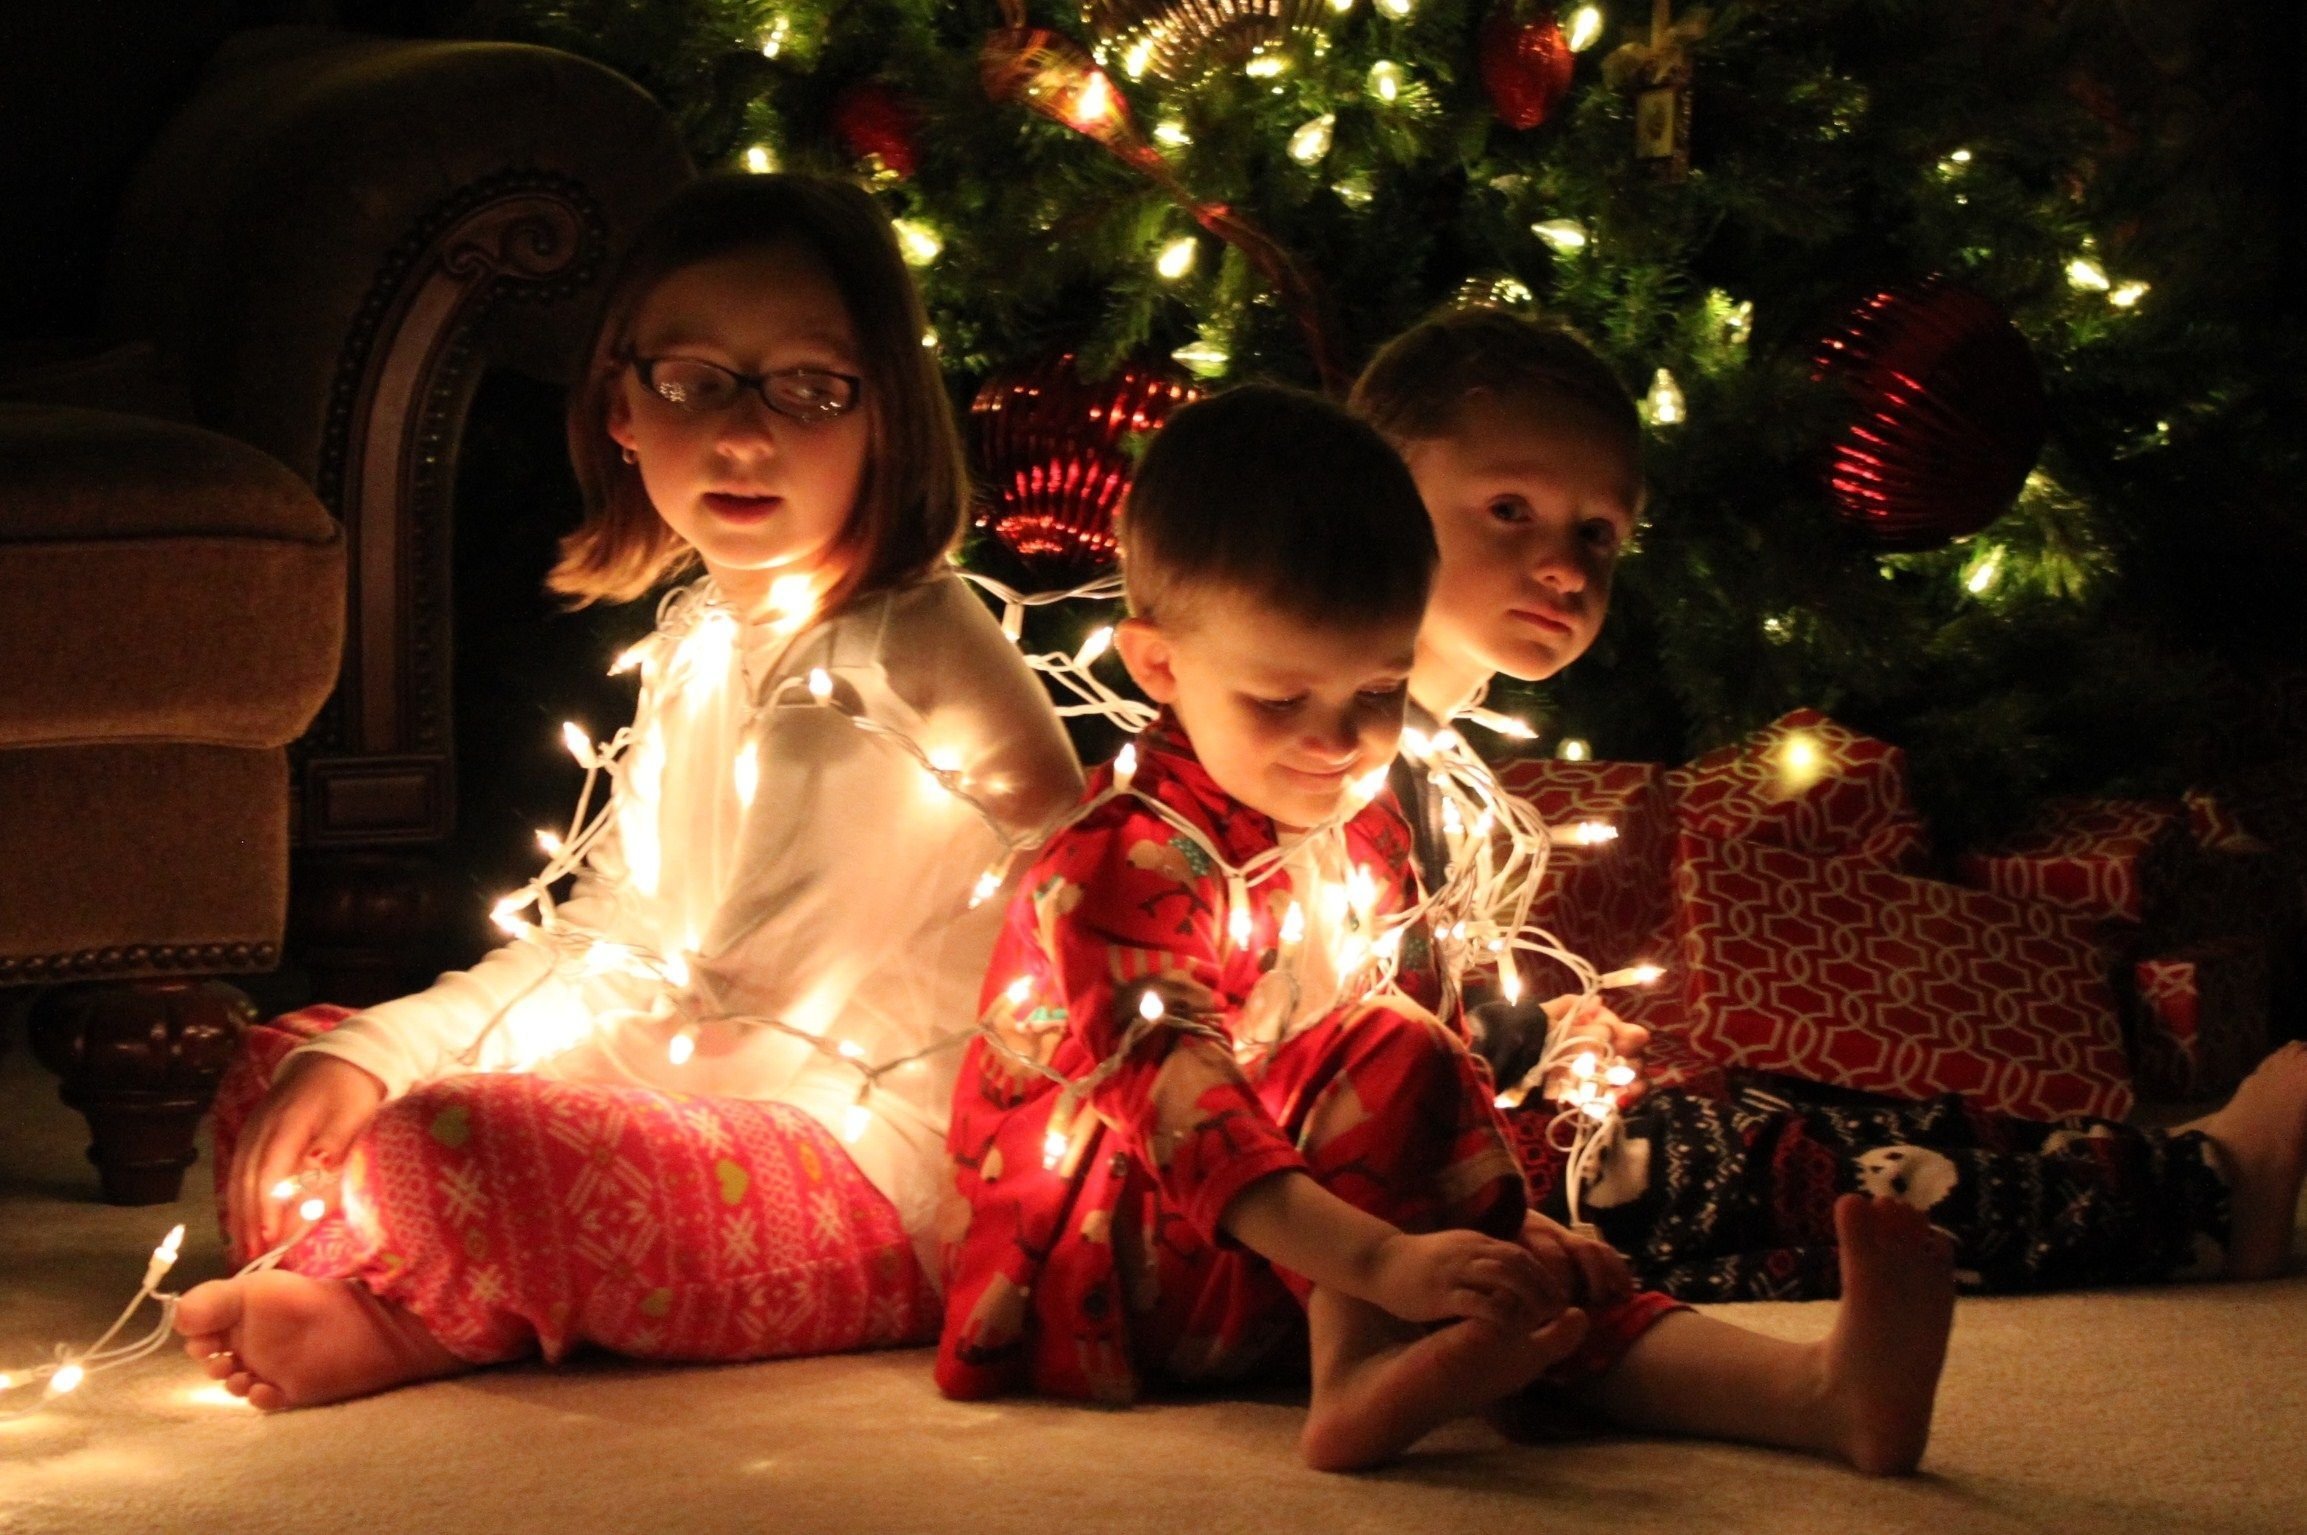 10 Nice Funny Christmas Card Photo Ideas For Kids christmas card ideas family christmas pictures christmas pictures 2021